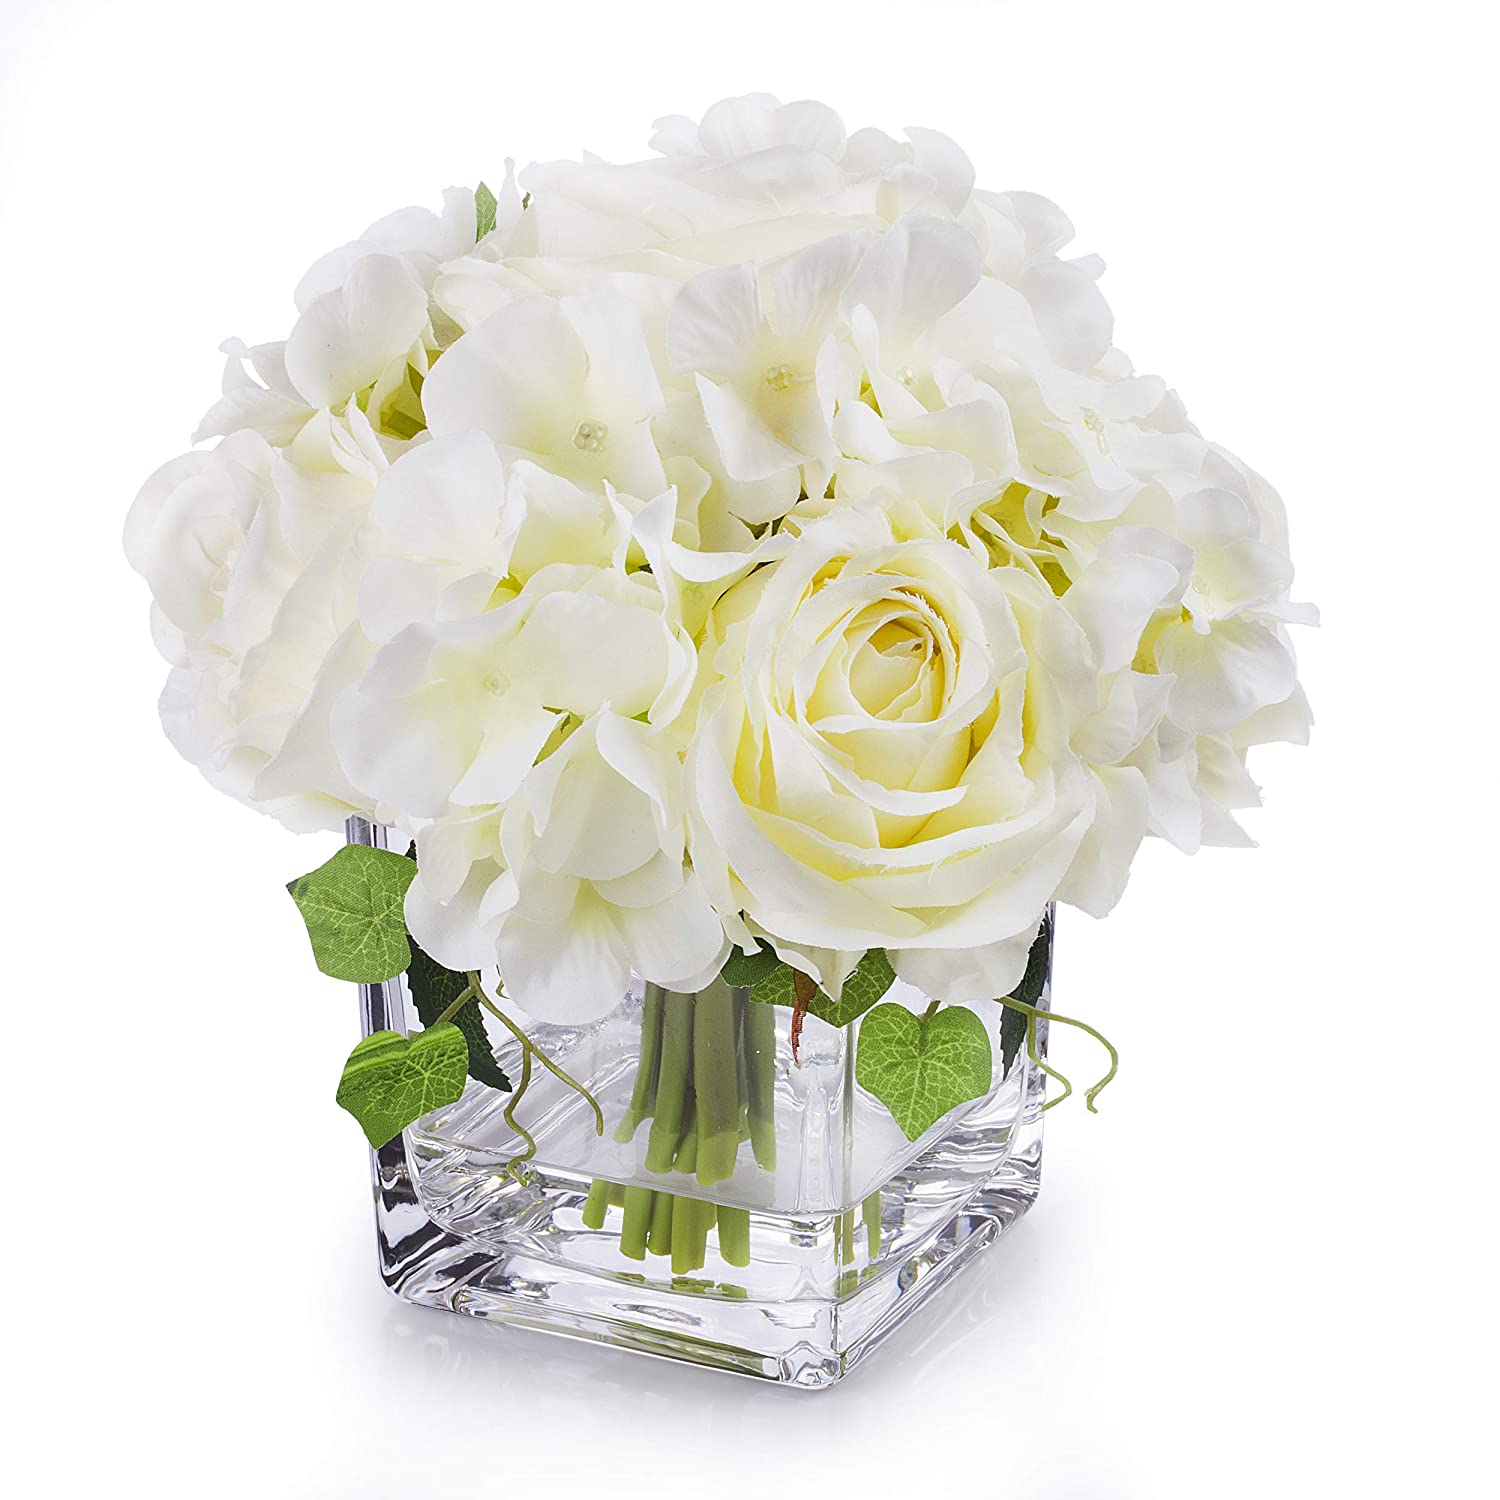 Enova Home Artificial Silk Rose and Hydrangea Flowers Arrangements in Cube Glass Vase for Home Wedding Decoration (Cream) (Cream)